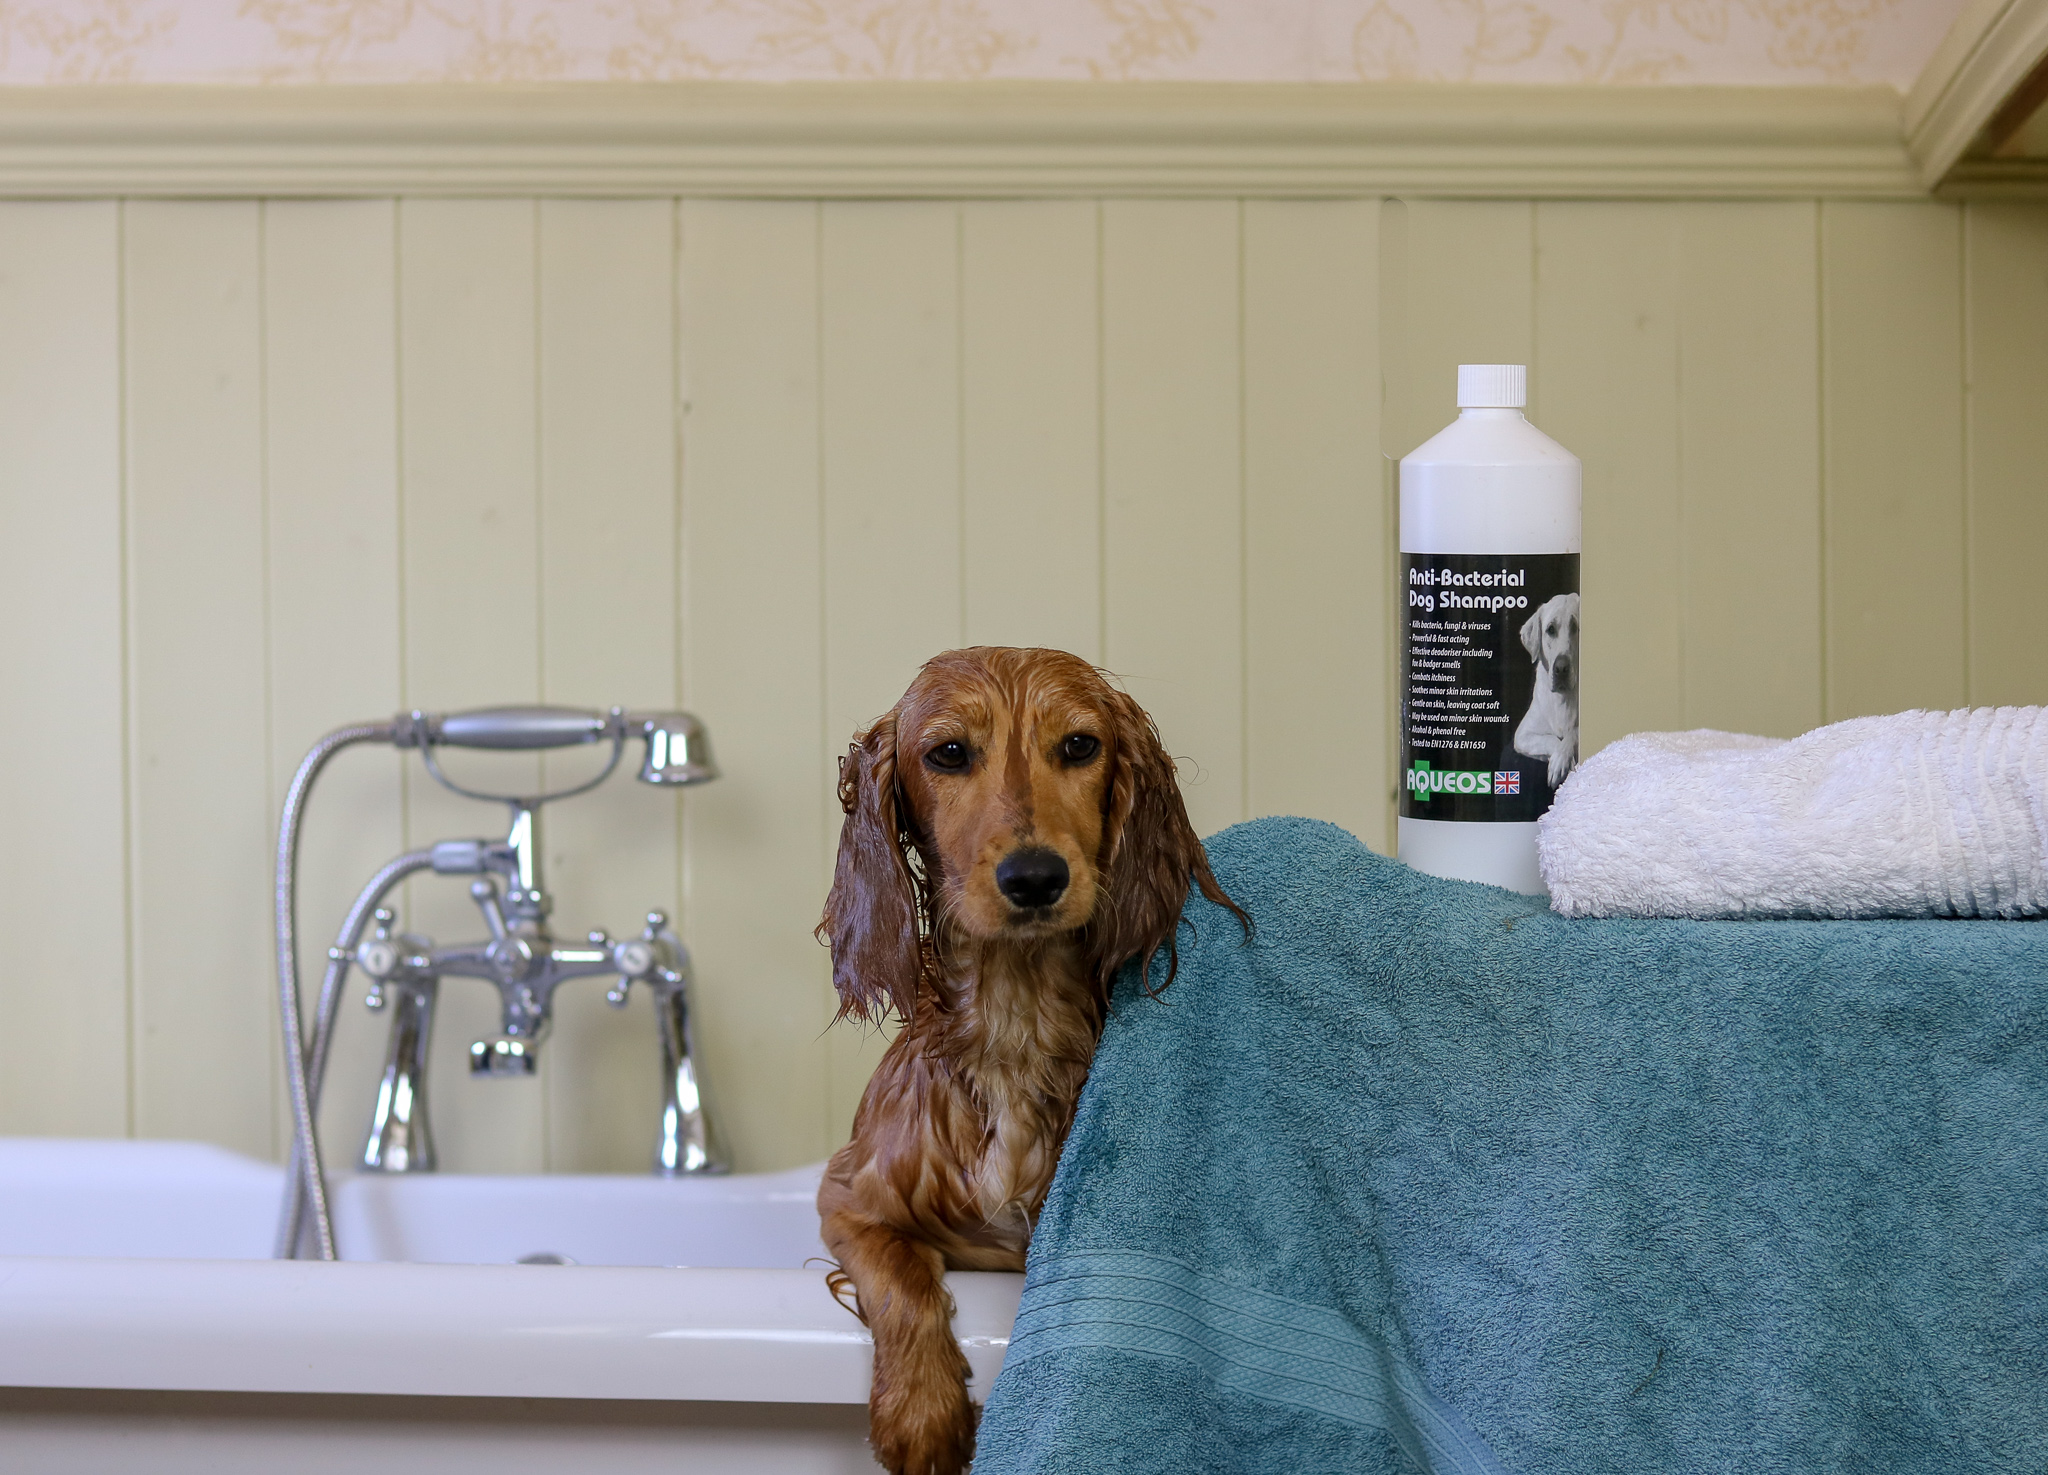 Aqueos Canine Disinfectant Products Review